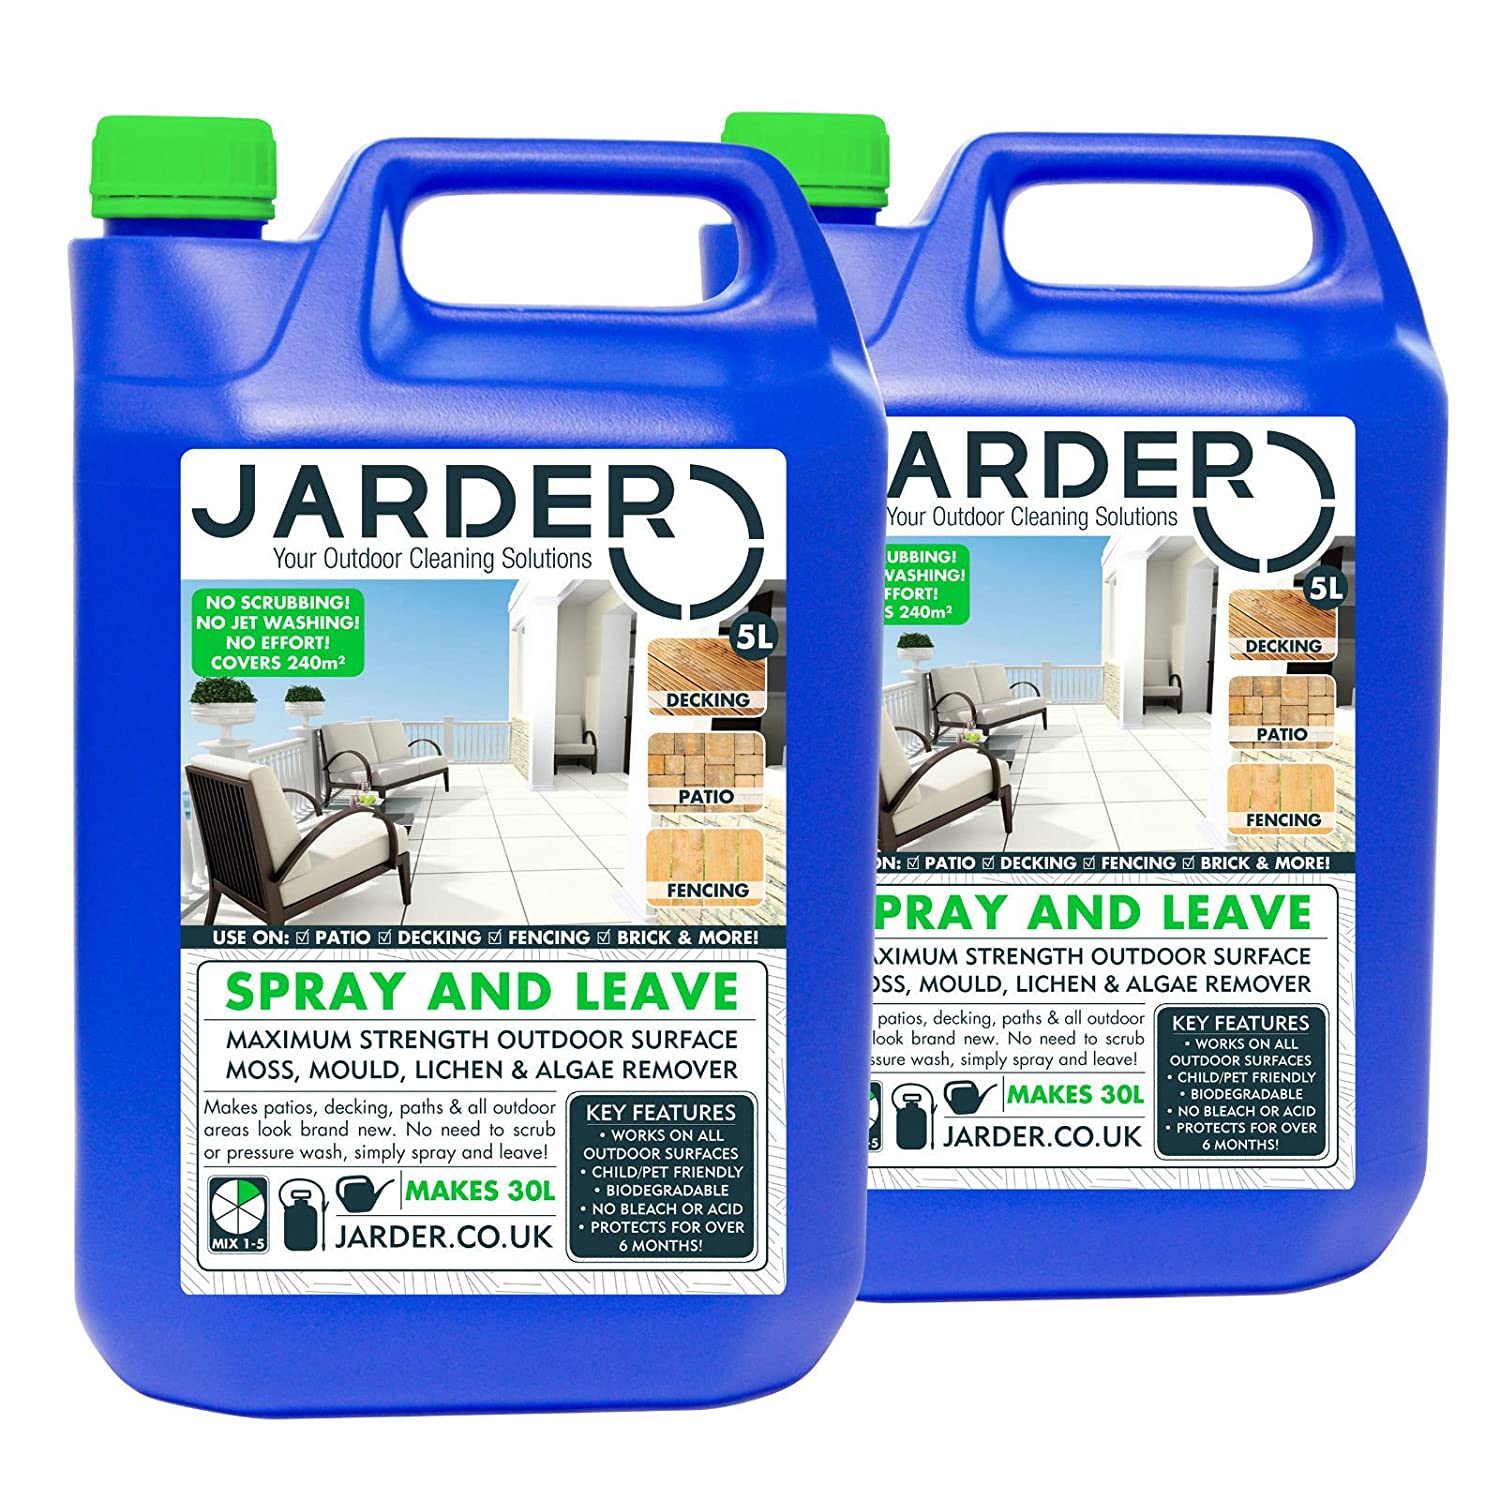 2 x 5 Litre Concentrate Jarder Spray & Leave Cleaner - Patio Fencing Decking - Moss Mould & Algae Killer